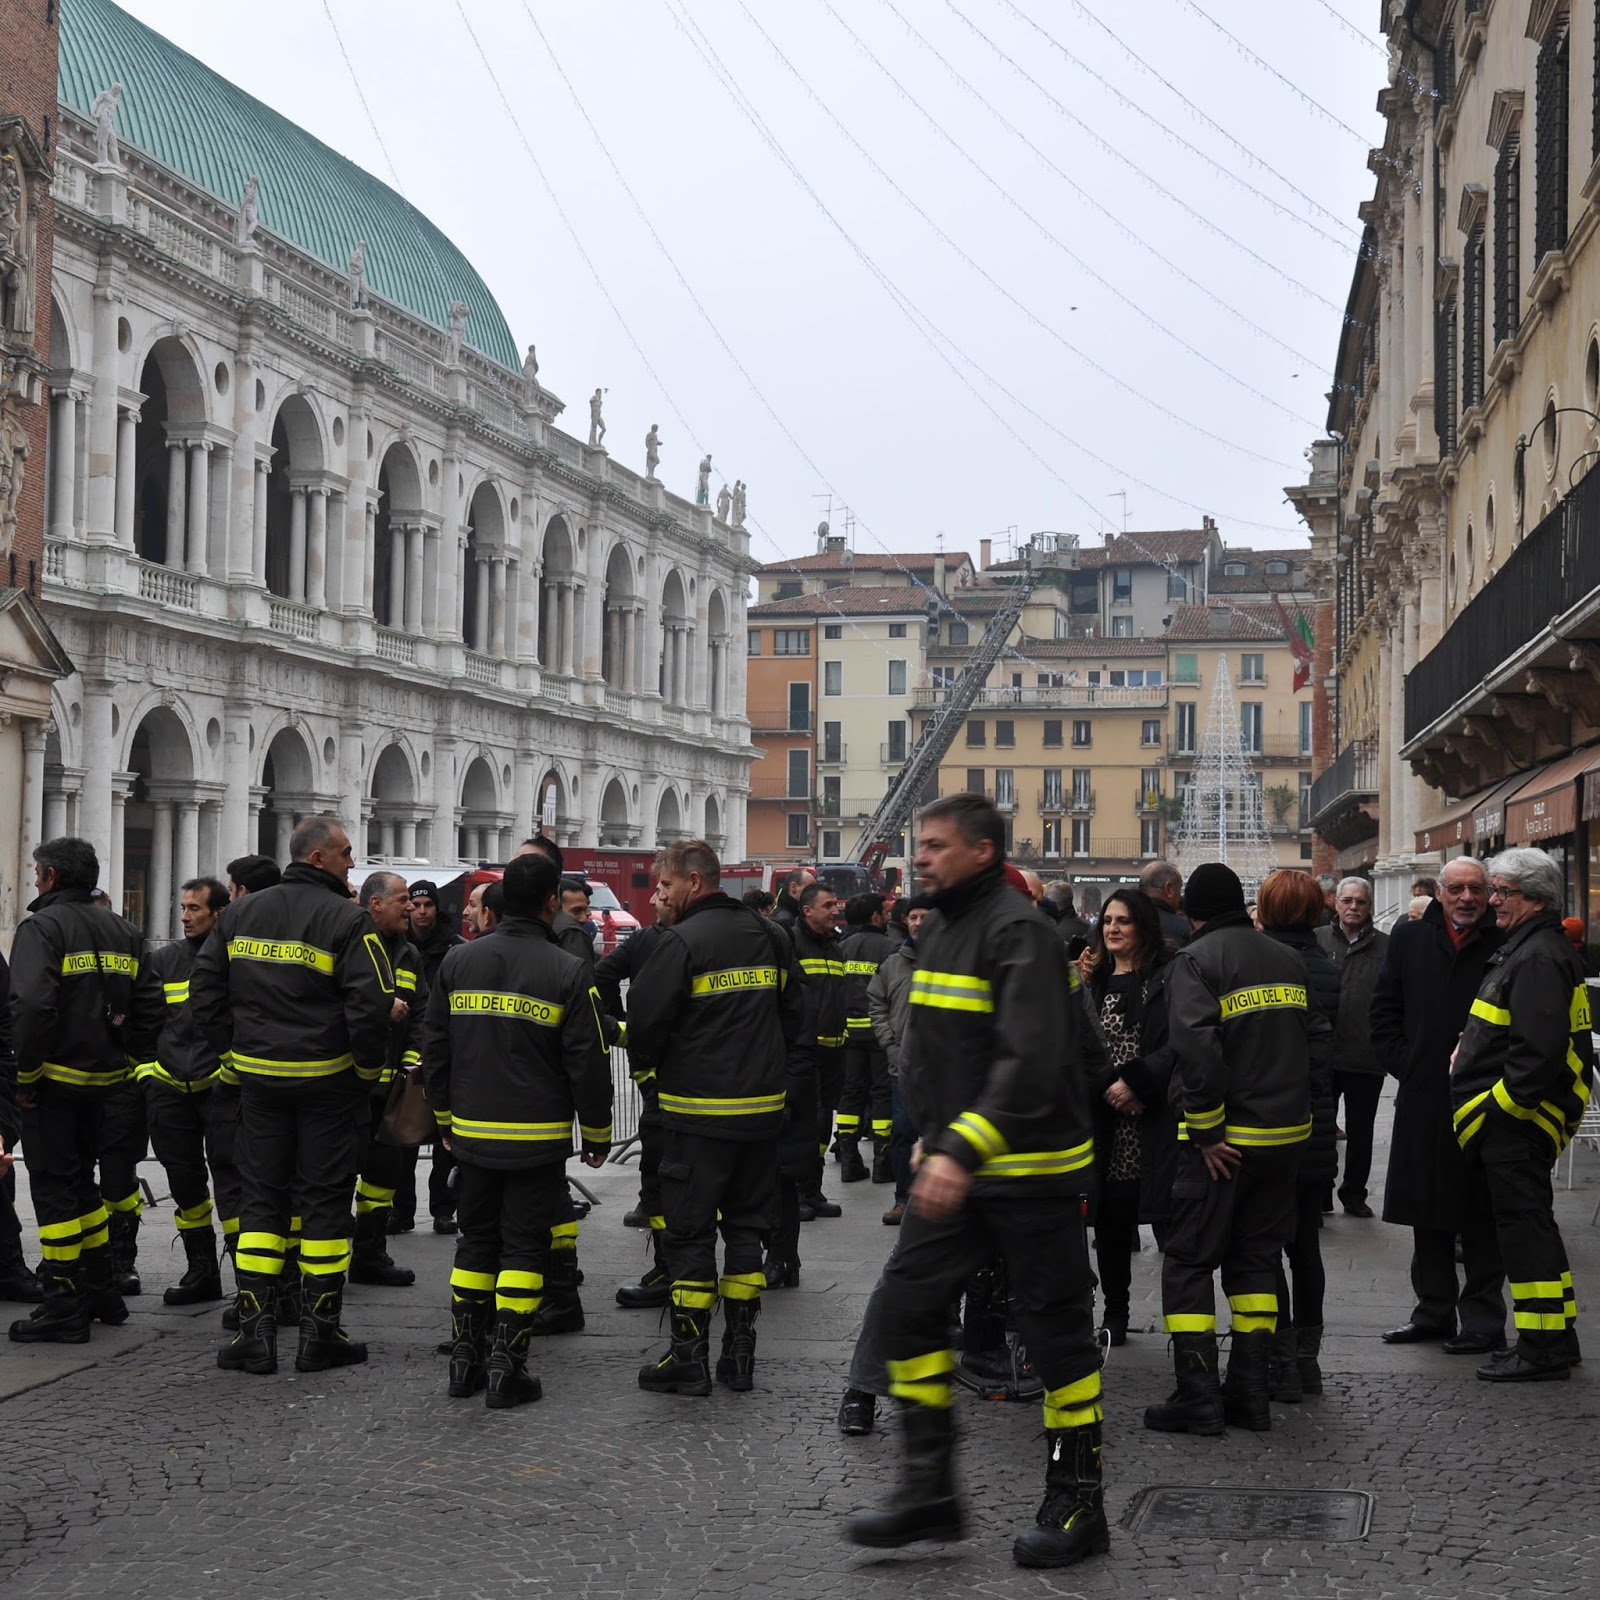 Firefighters, Piazza dei Signori, Saint Barbara celebration, Vicenza, Veneto, Italy